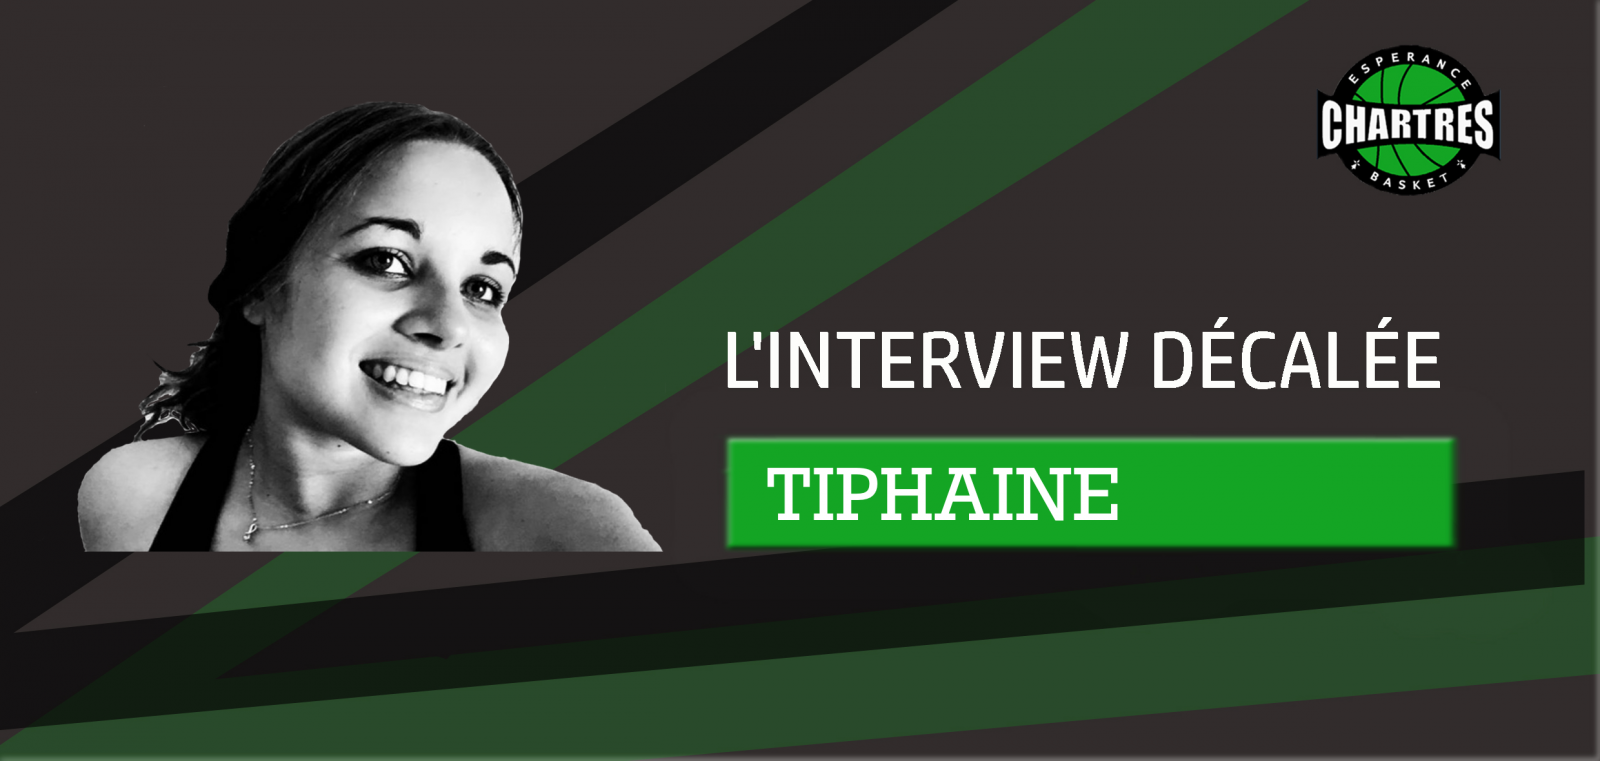 Interview décalée Tiphaine Reyter